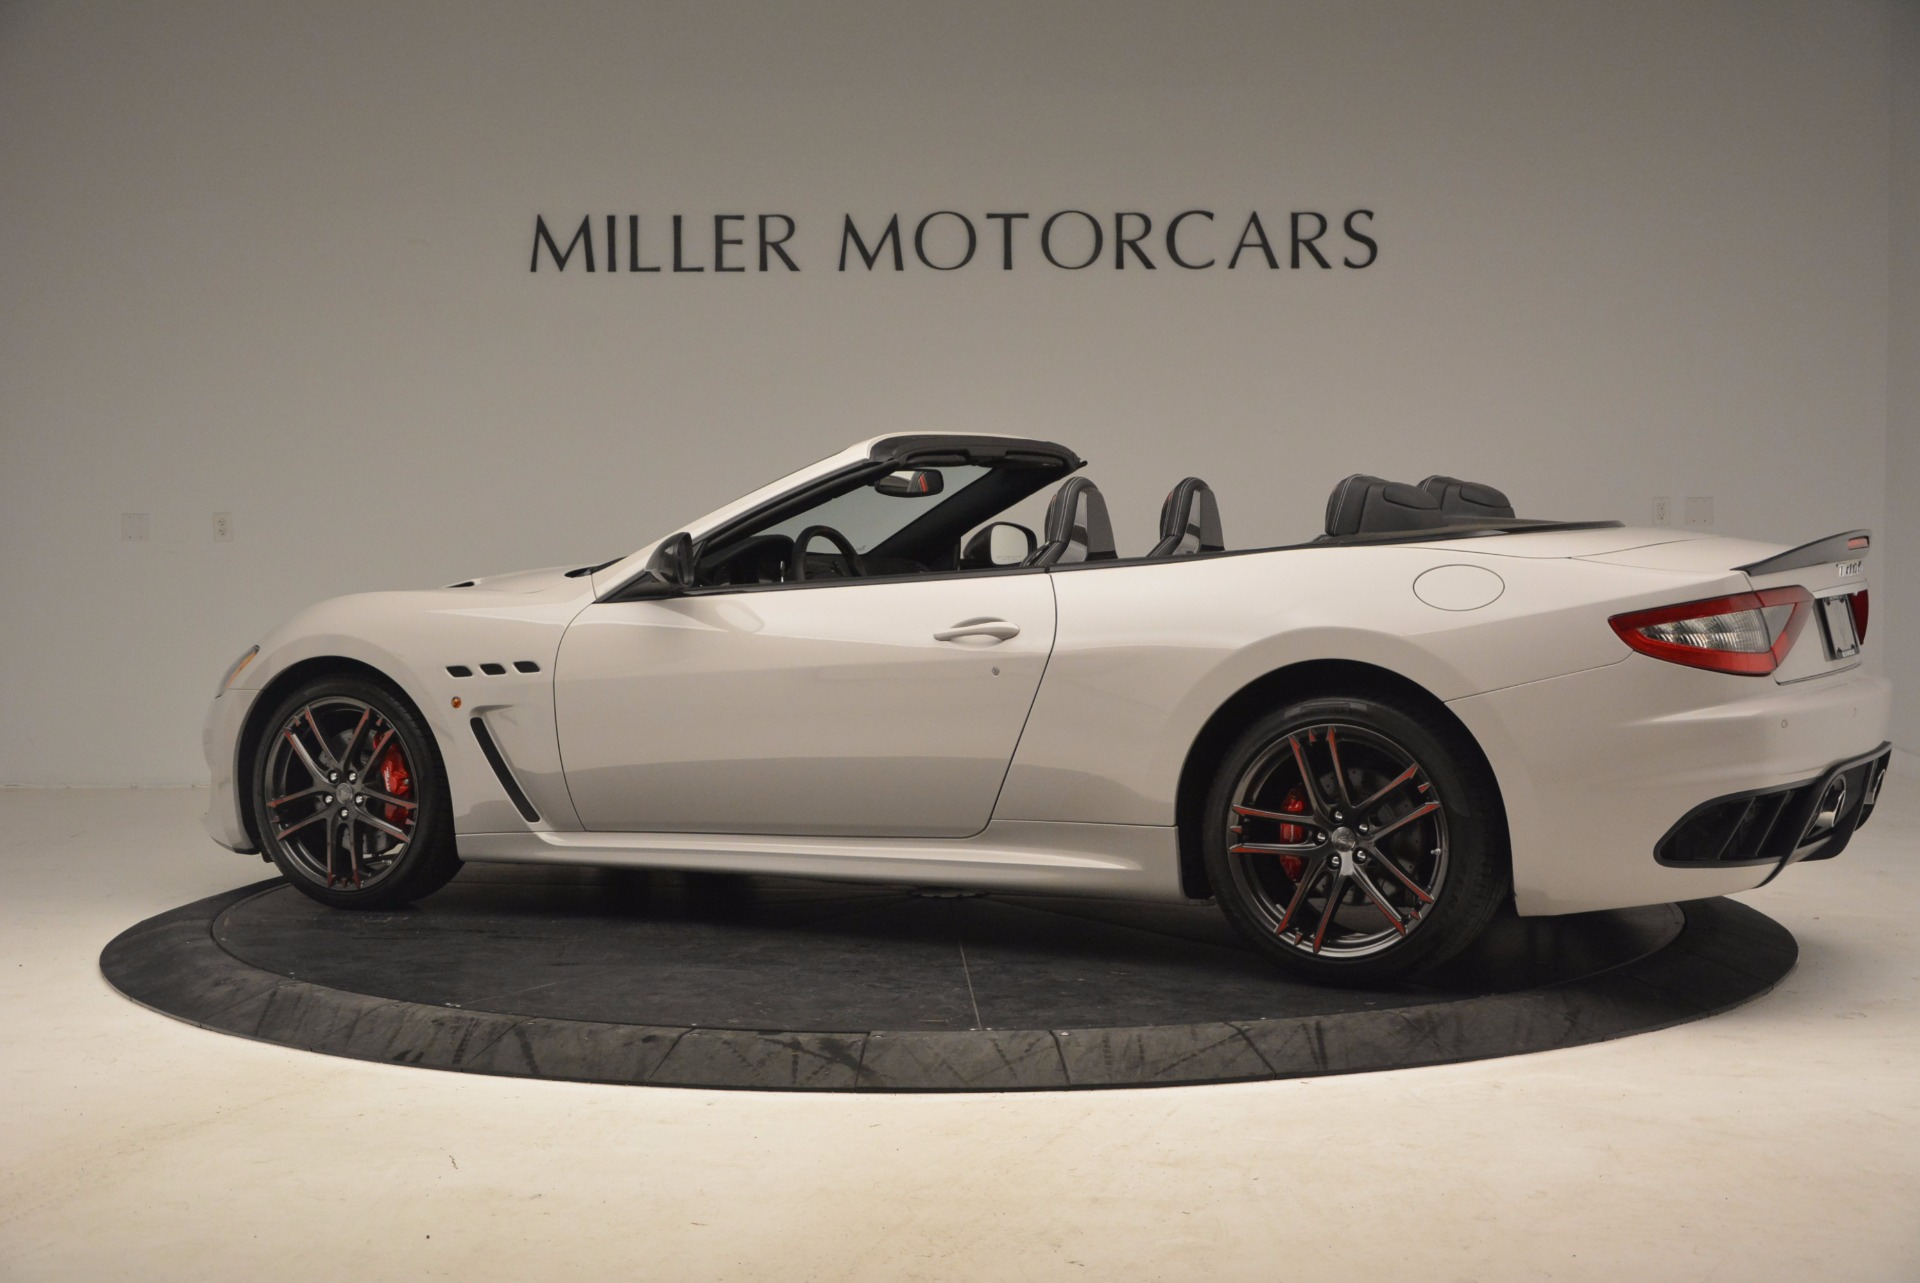 Used 2015 Maserati GranTurismo MC Centennial For Sale In Westport, CT 1107_p4